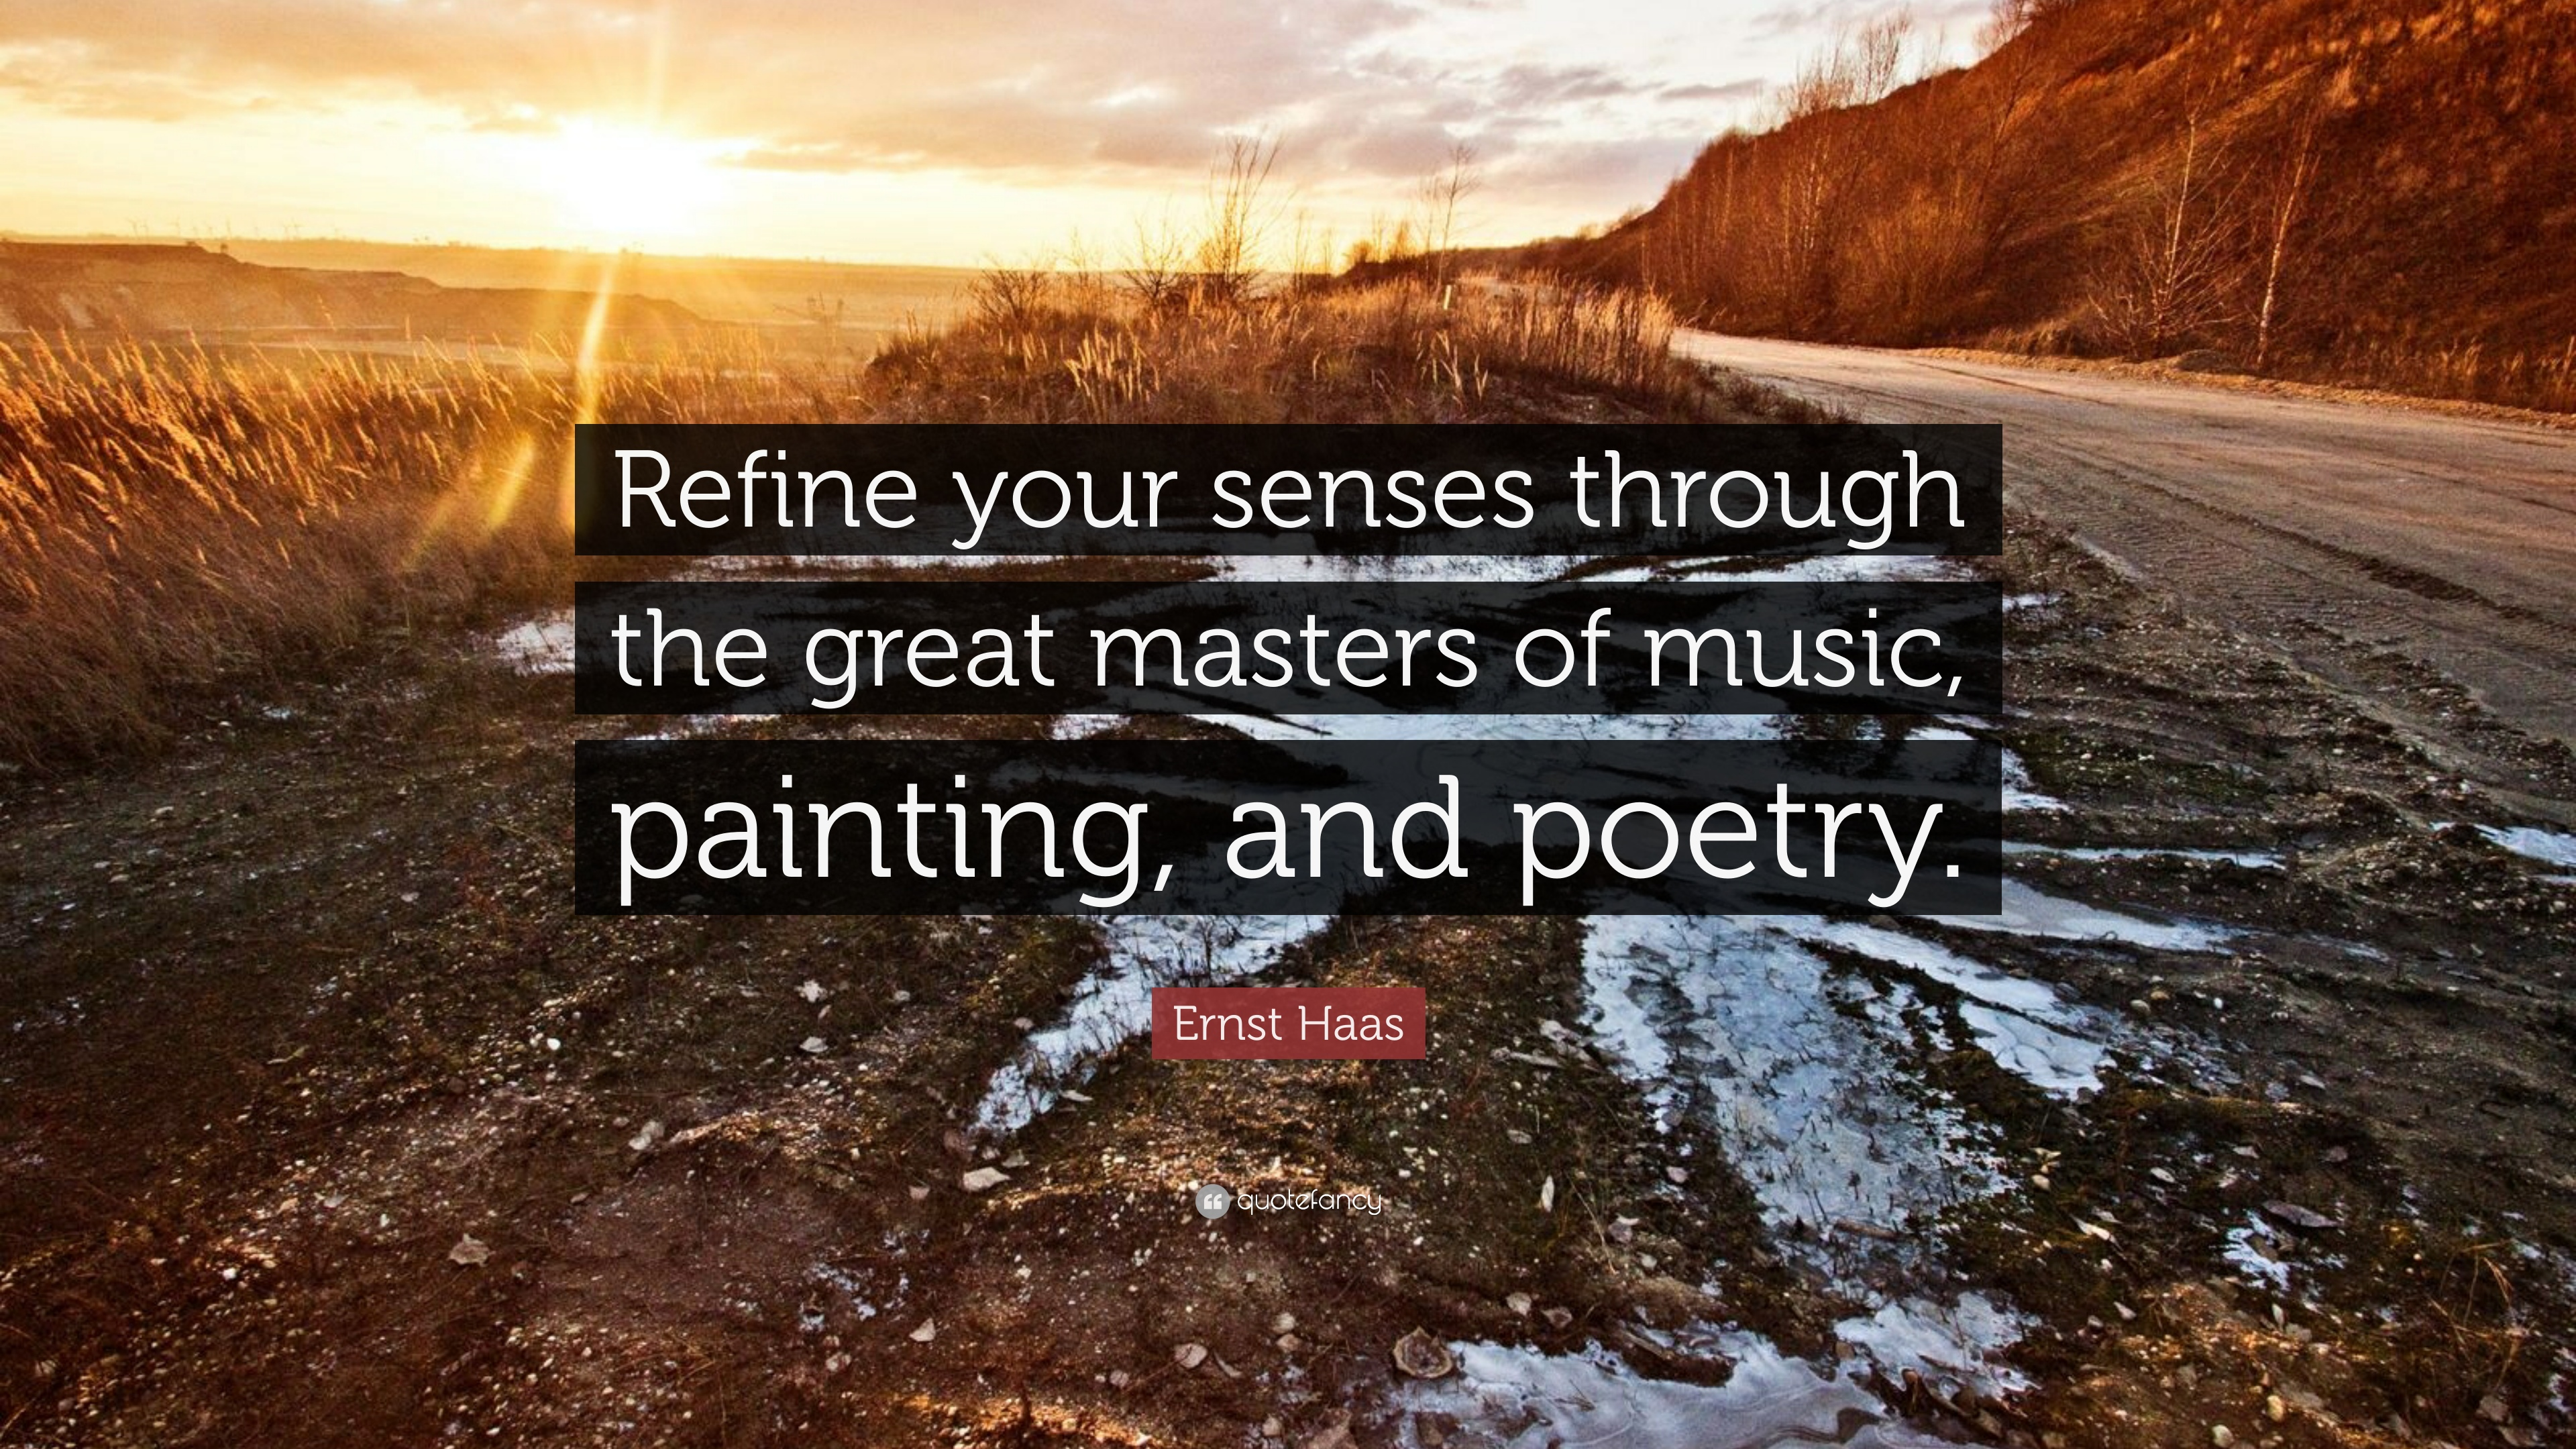 Fantastic Wallpaper Music Painting - 941963-Ernst-Haas-Quote-Refine-your-senses-through-the-great-masters-of  Pictures_918485.jpg